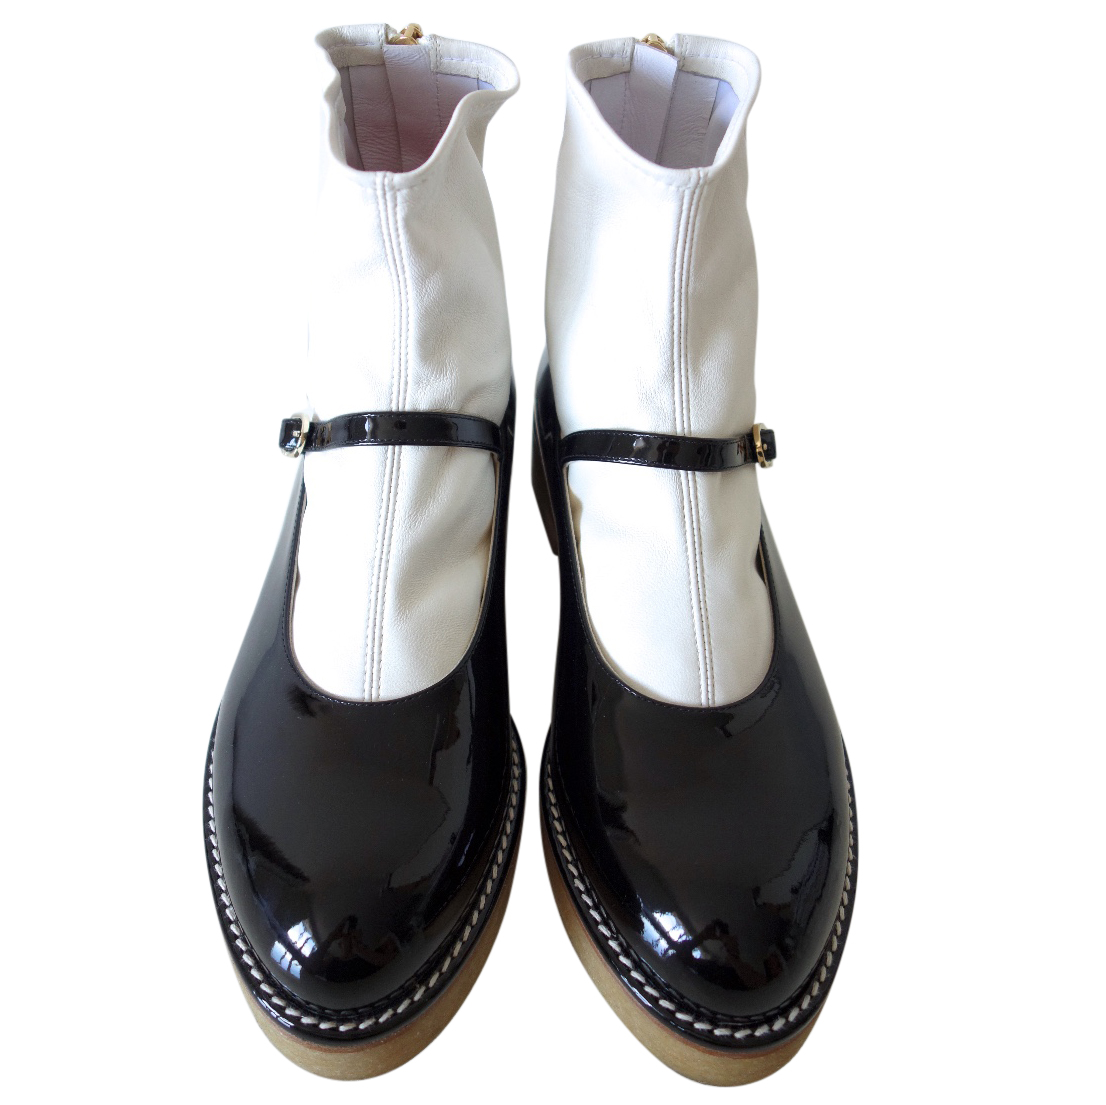 Chanel Leather Sock Mary Janes Hewi